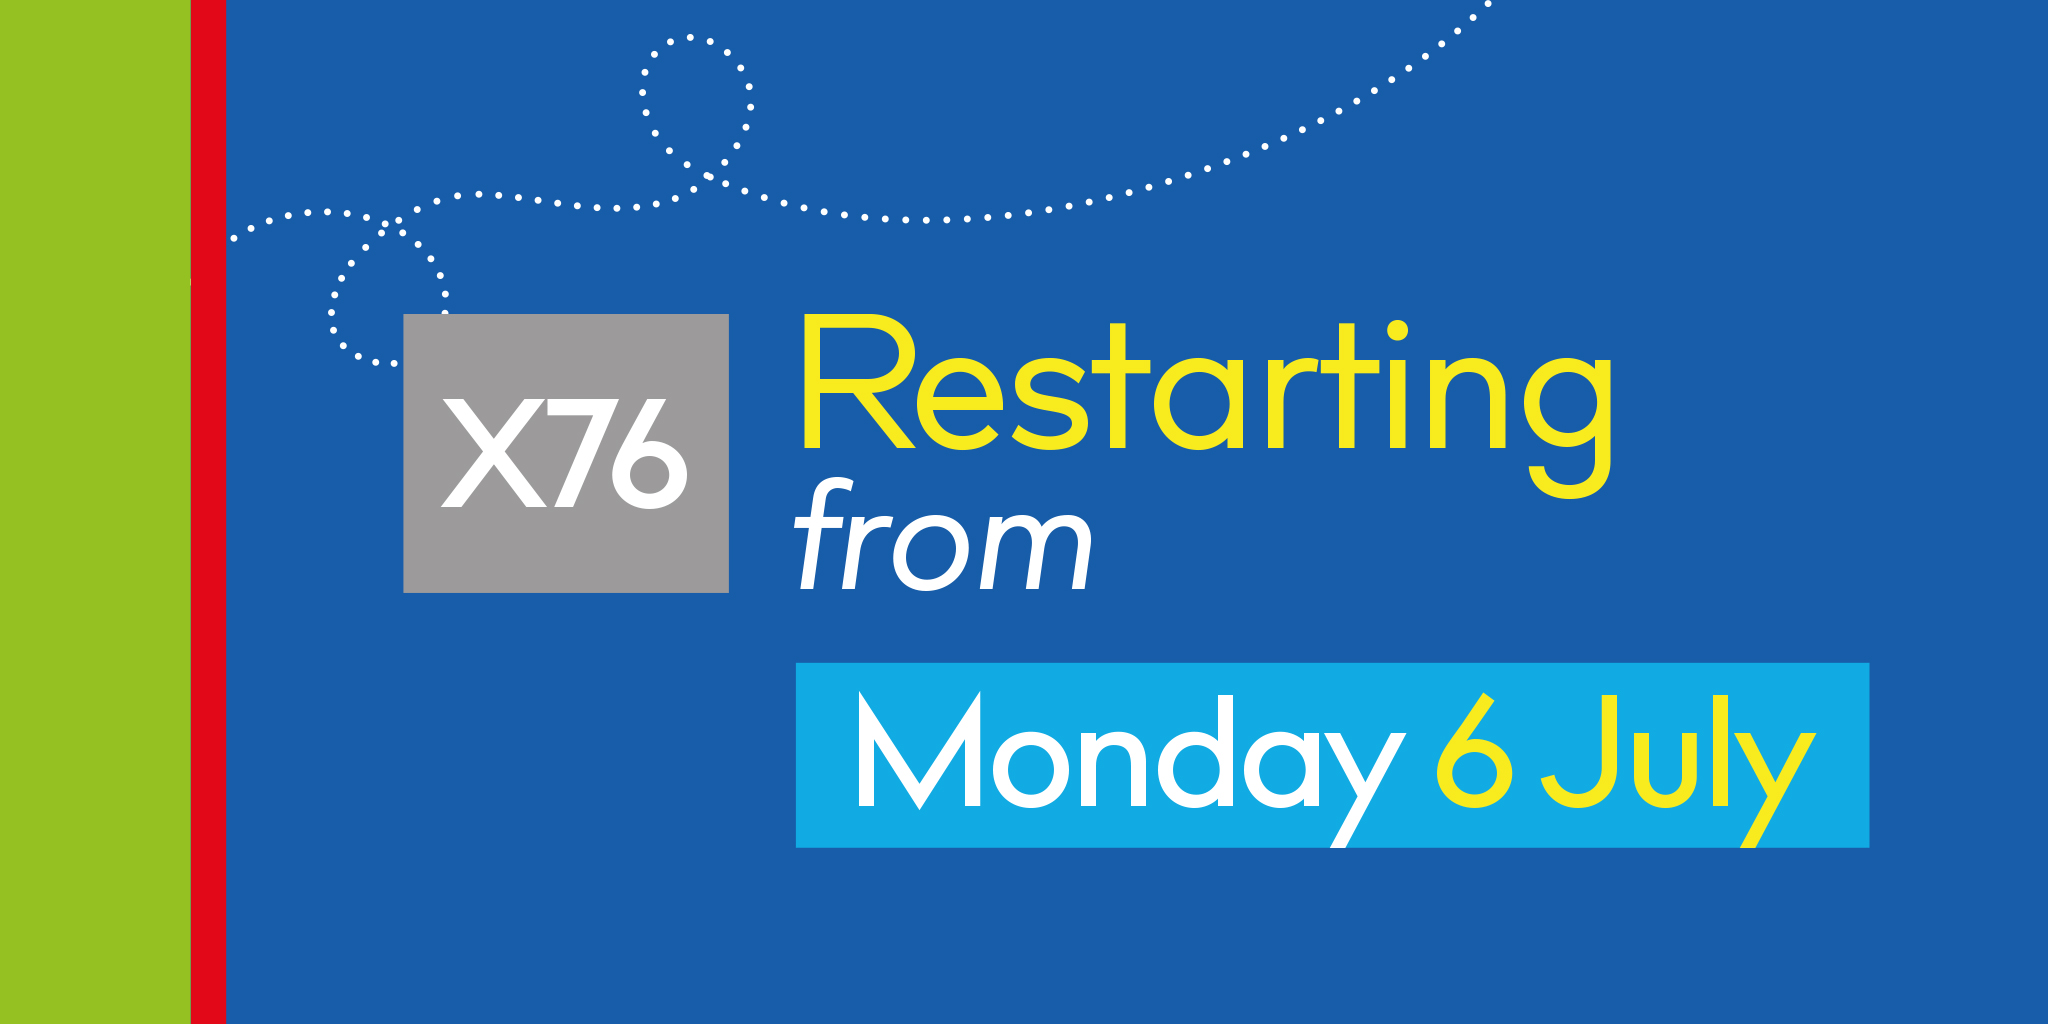 Image reading 'X76 restarting from Monday 6th July'